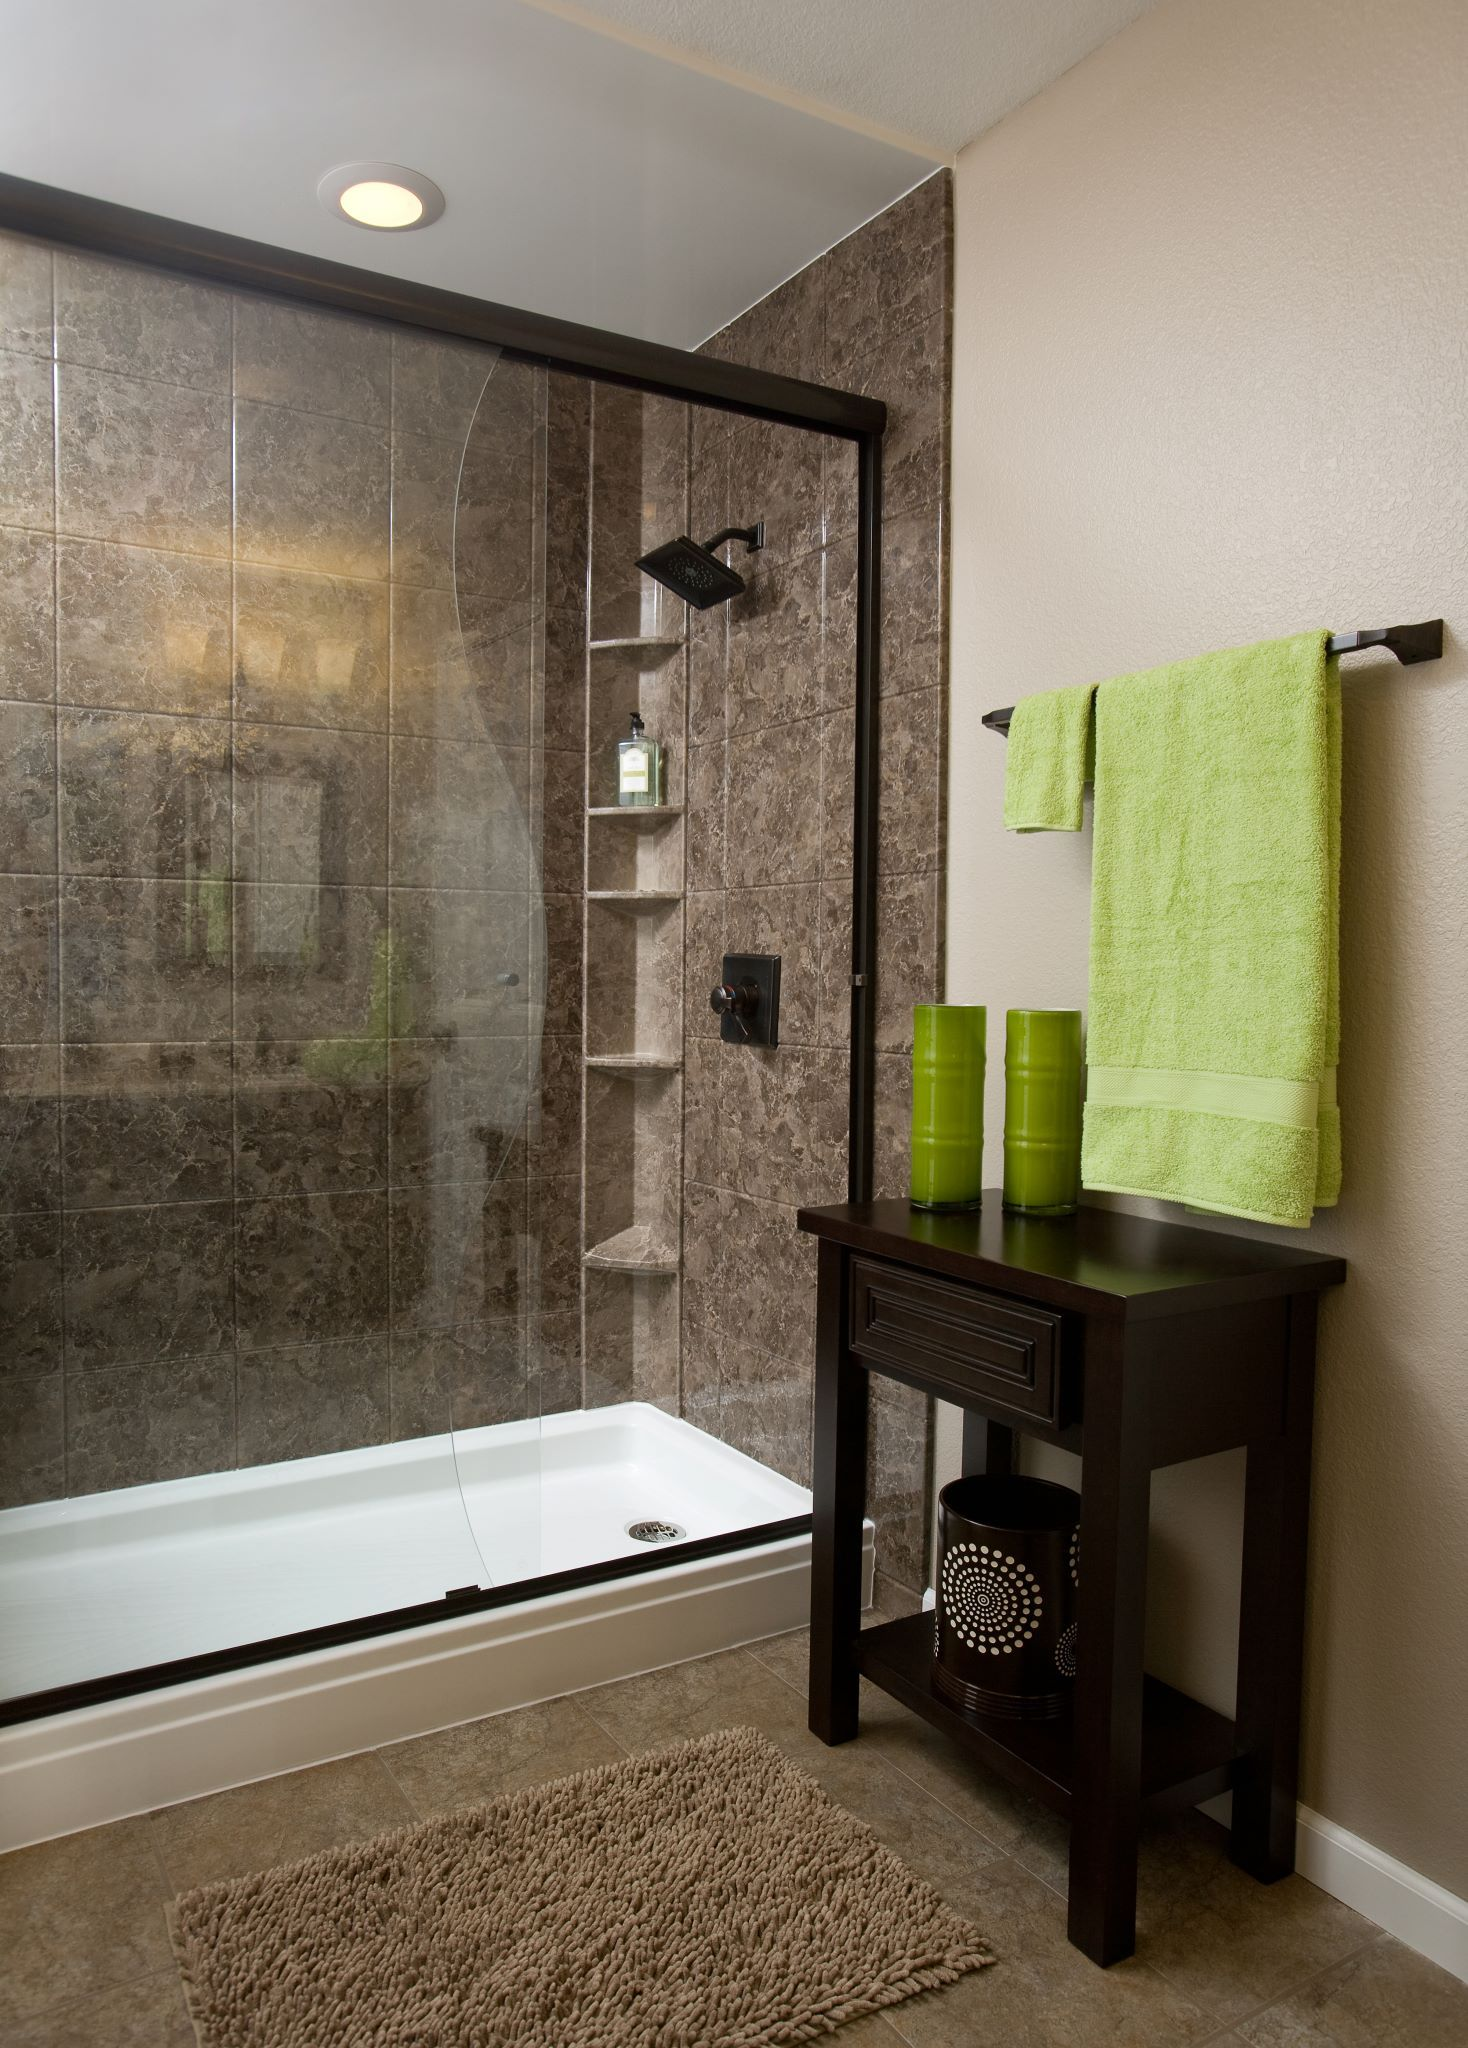 out cut redecor tub bergen conversion shower nj senior for to county convert